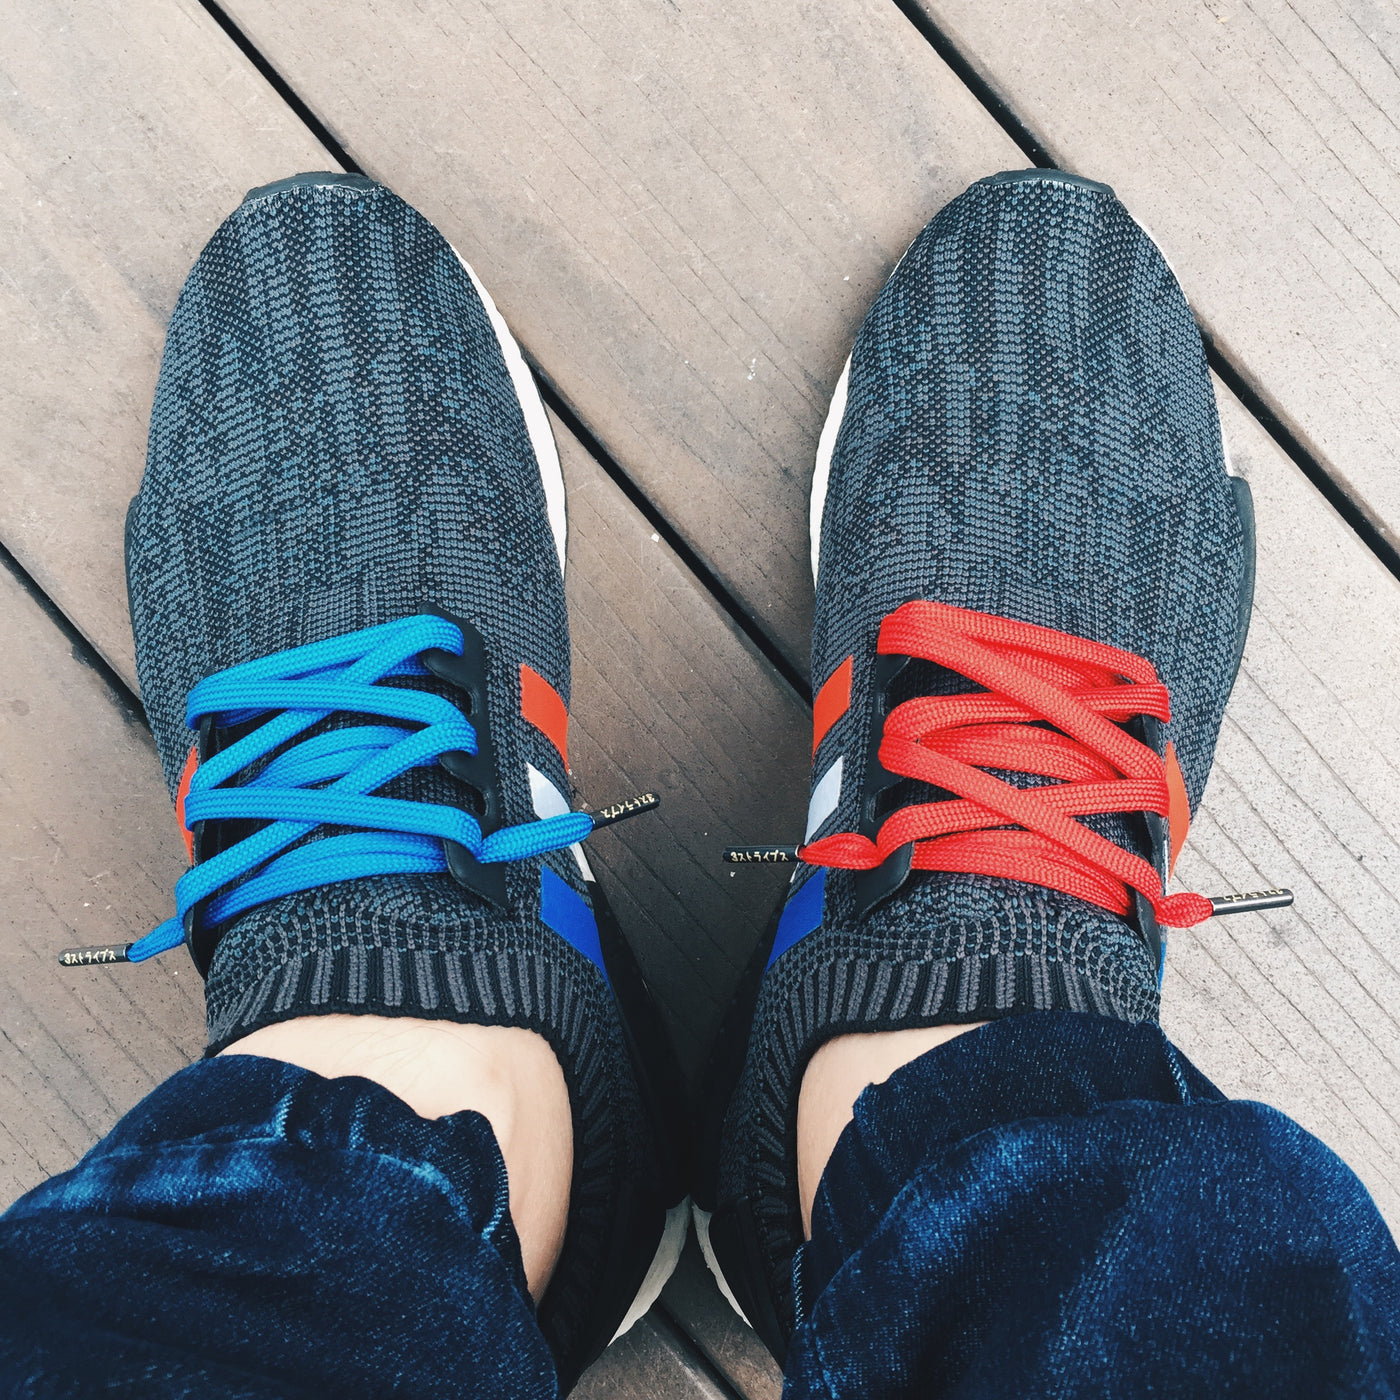 f5ed1c7fd53a Slickieslaces - Shoelaces for Your Ultra Boost   NMD Sneakers